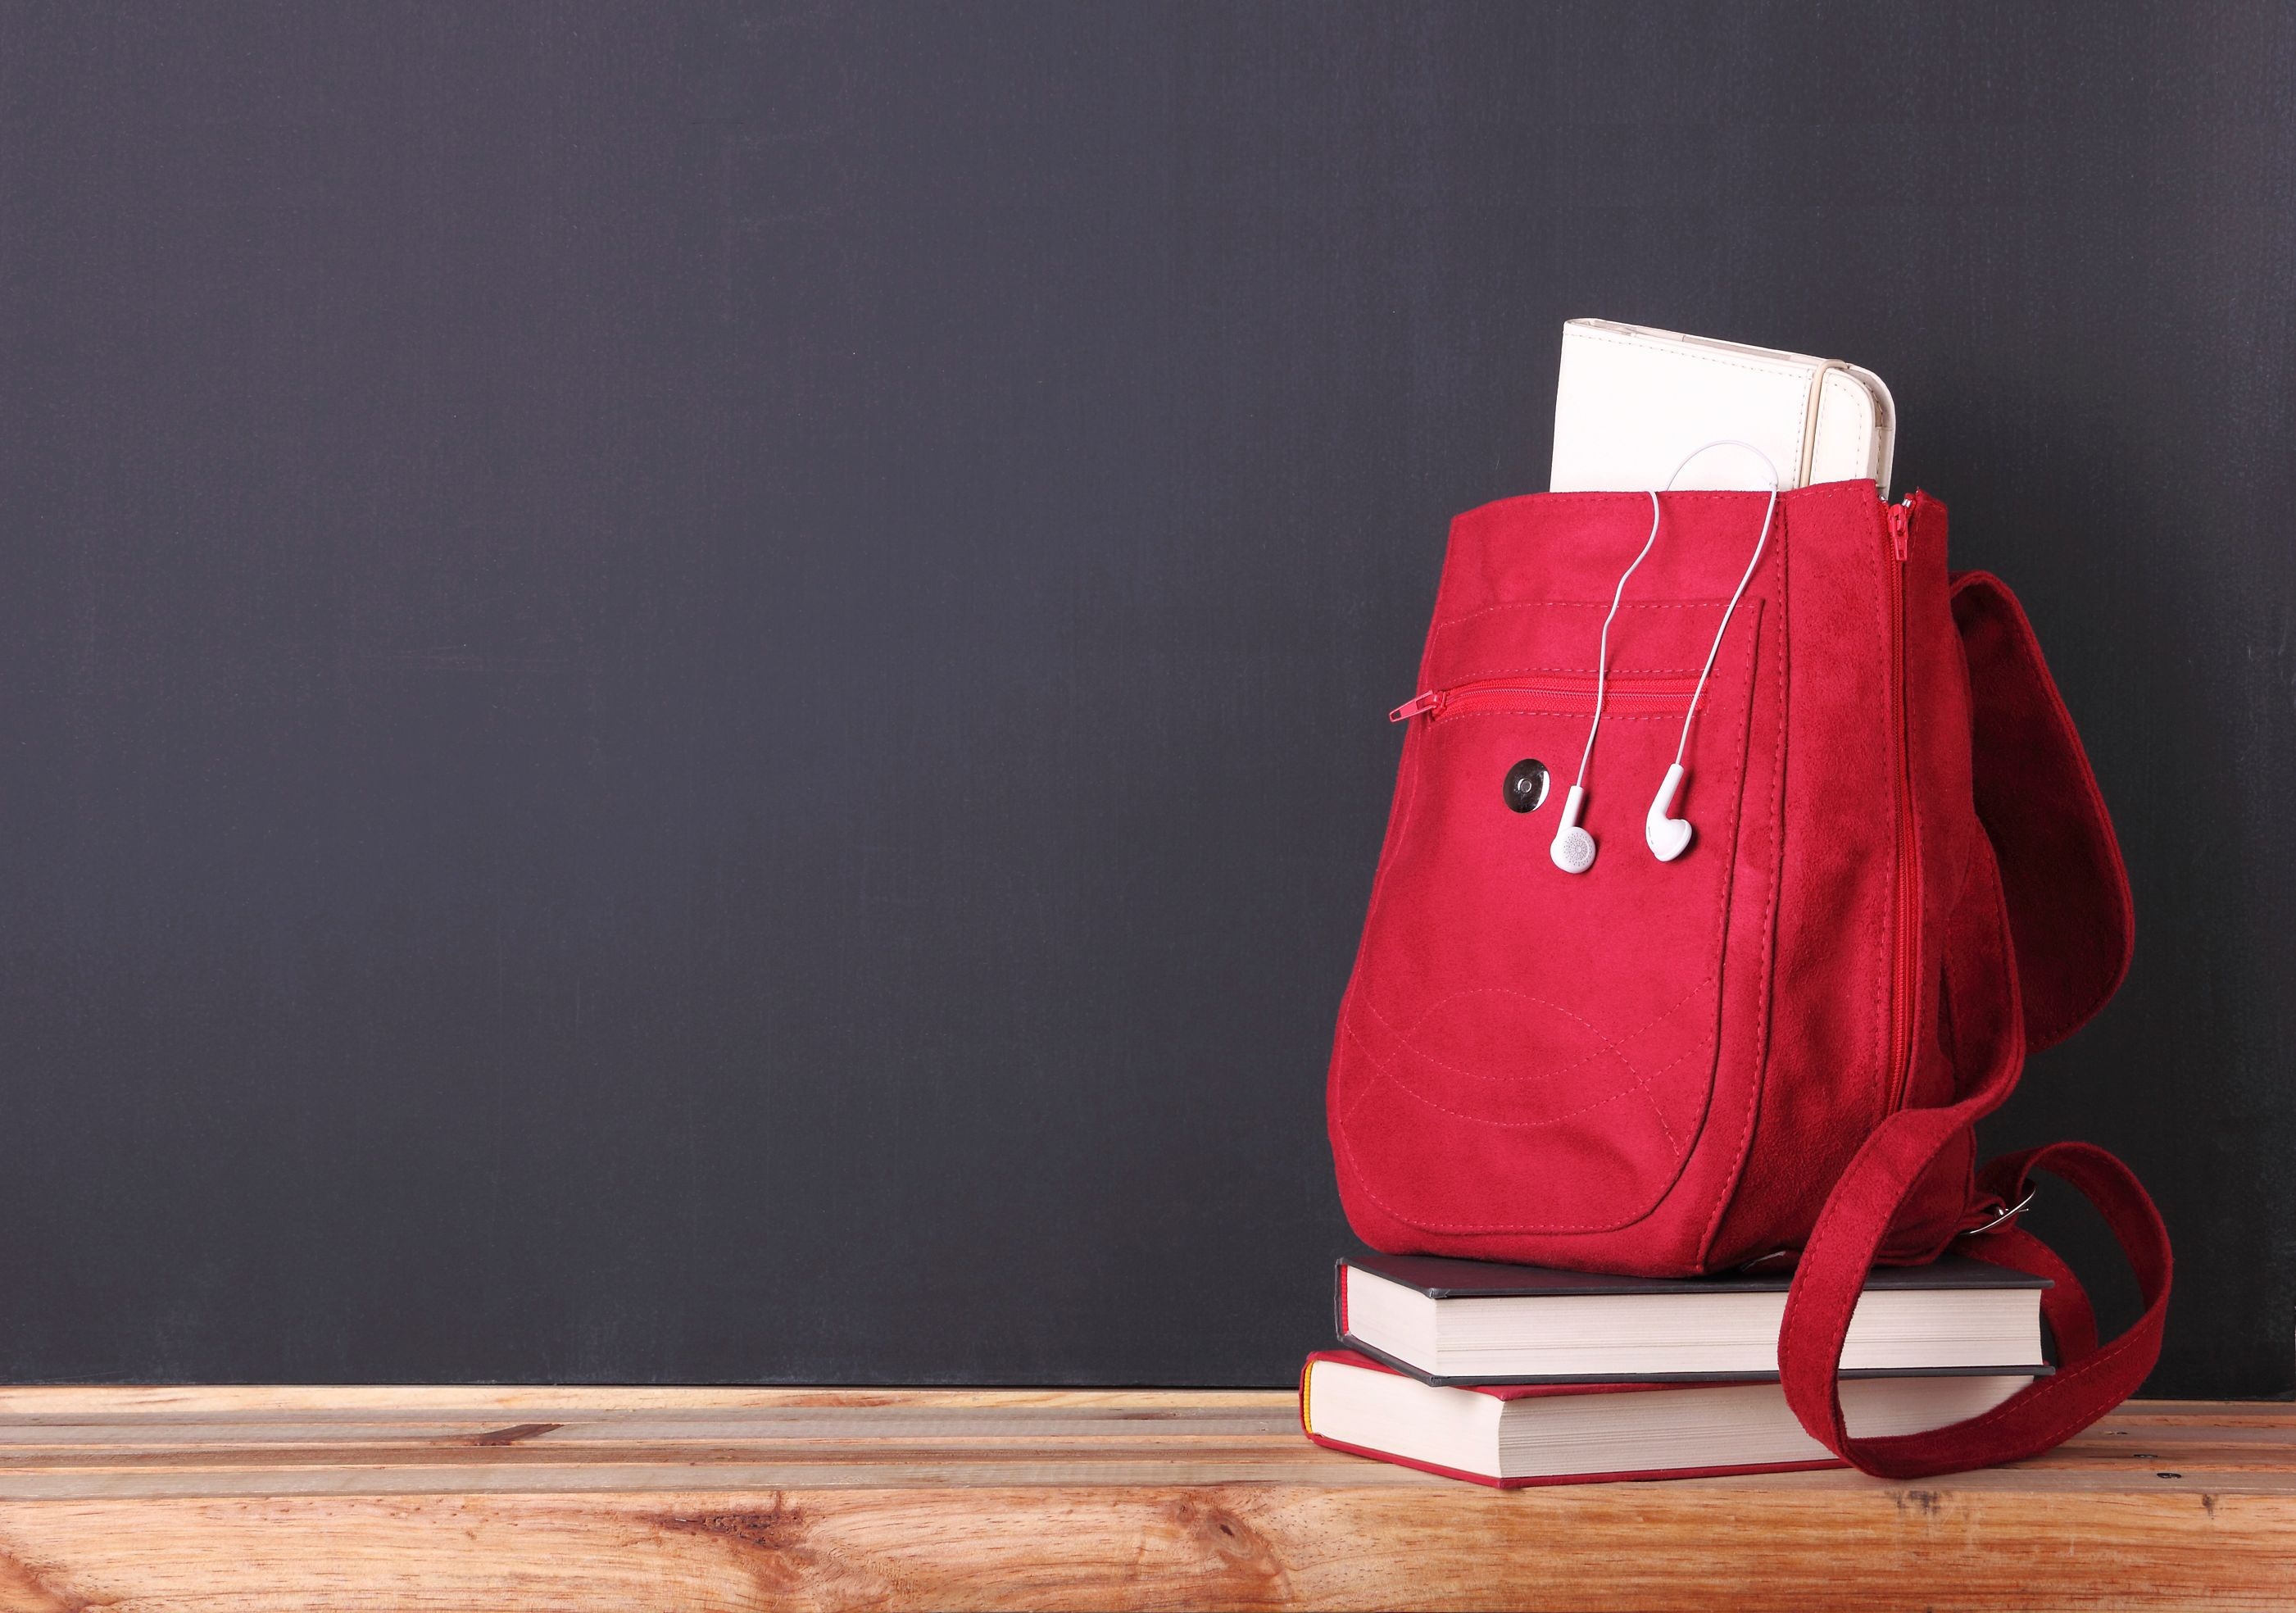 backpack and books